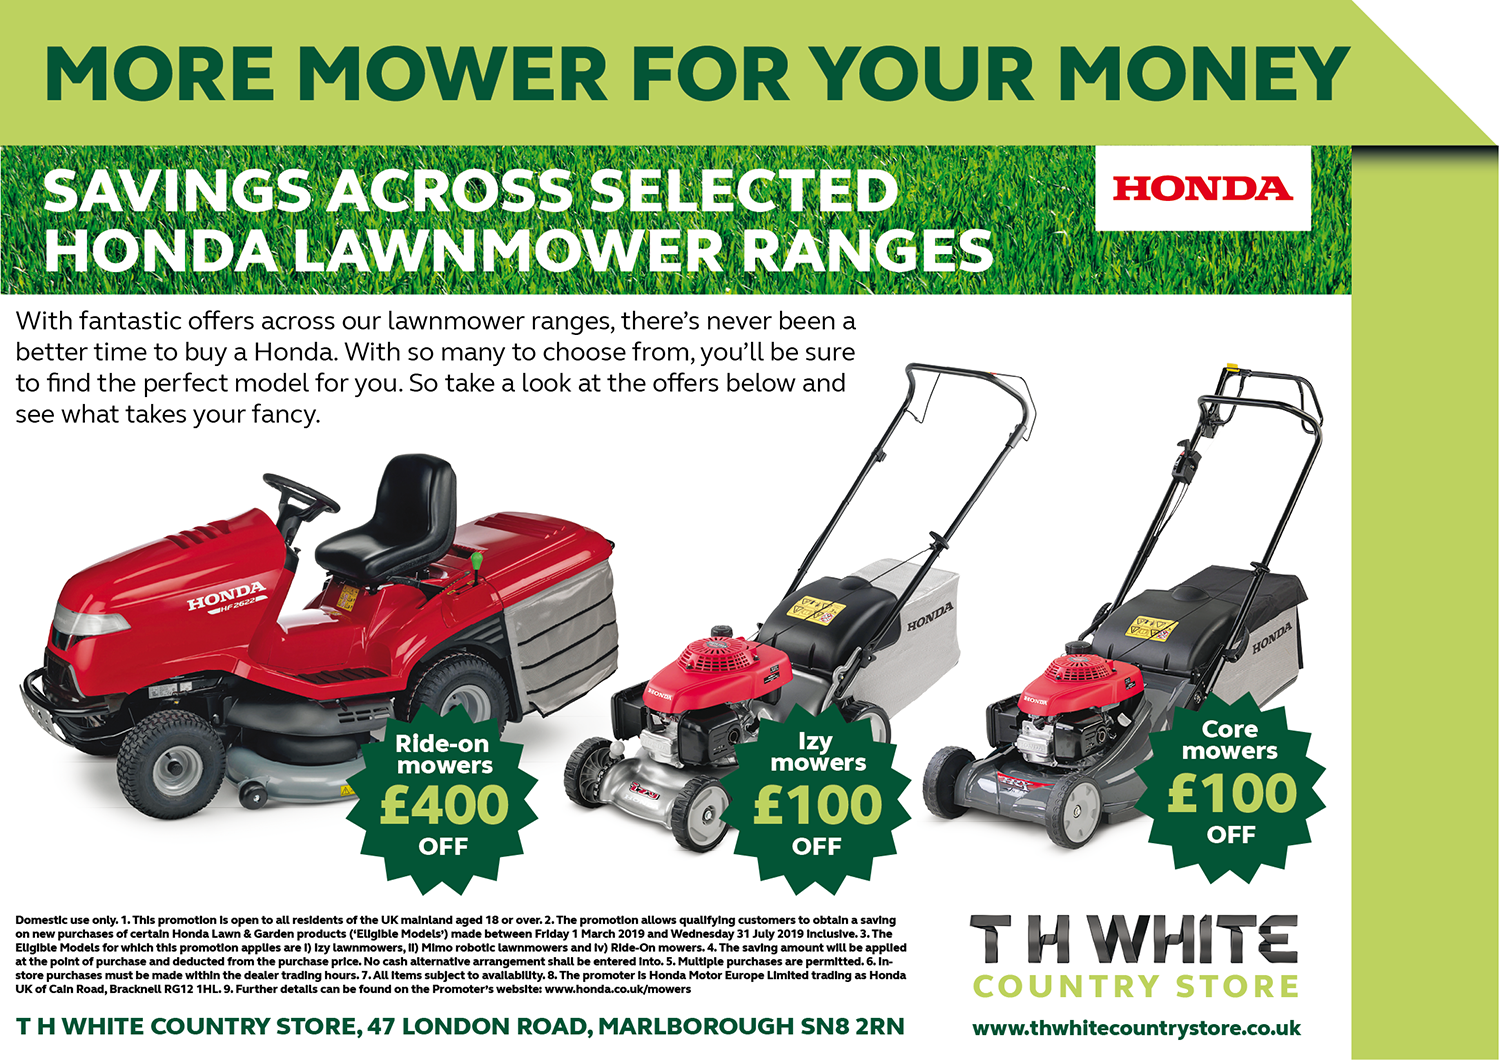 HUGE SAVINGS ON HONDA LAWNMOWERS